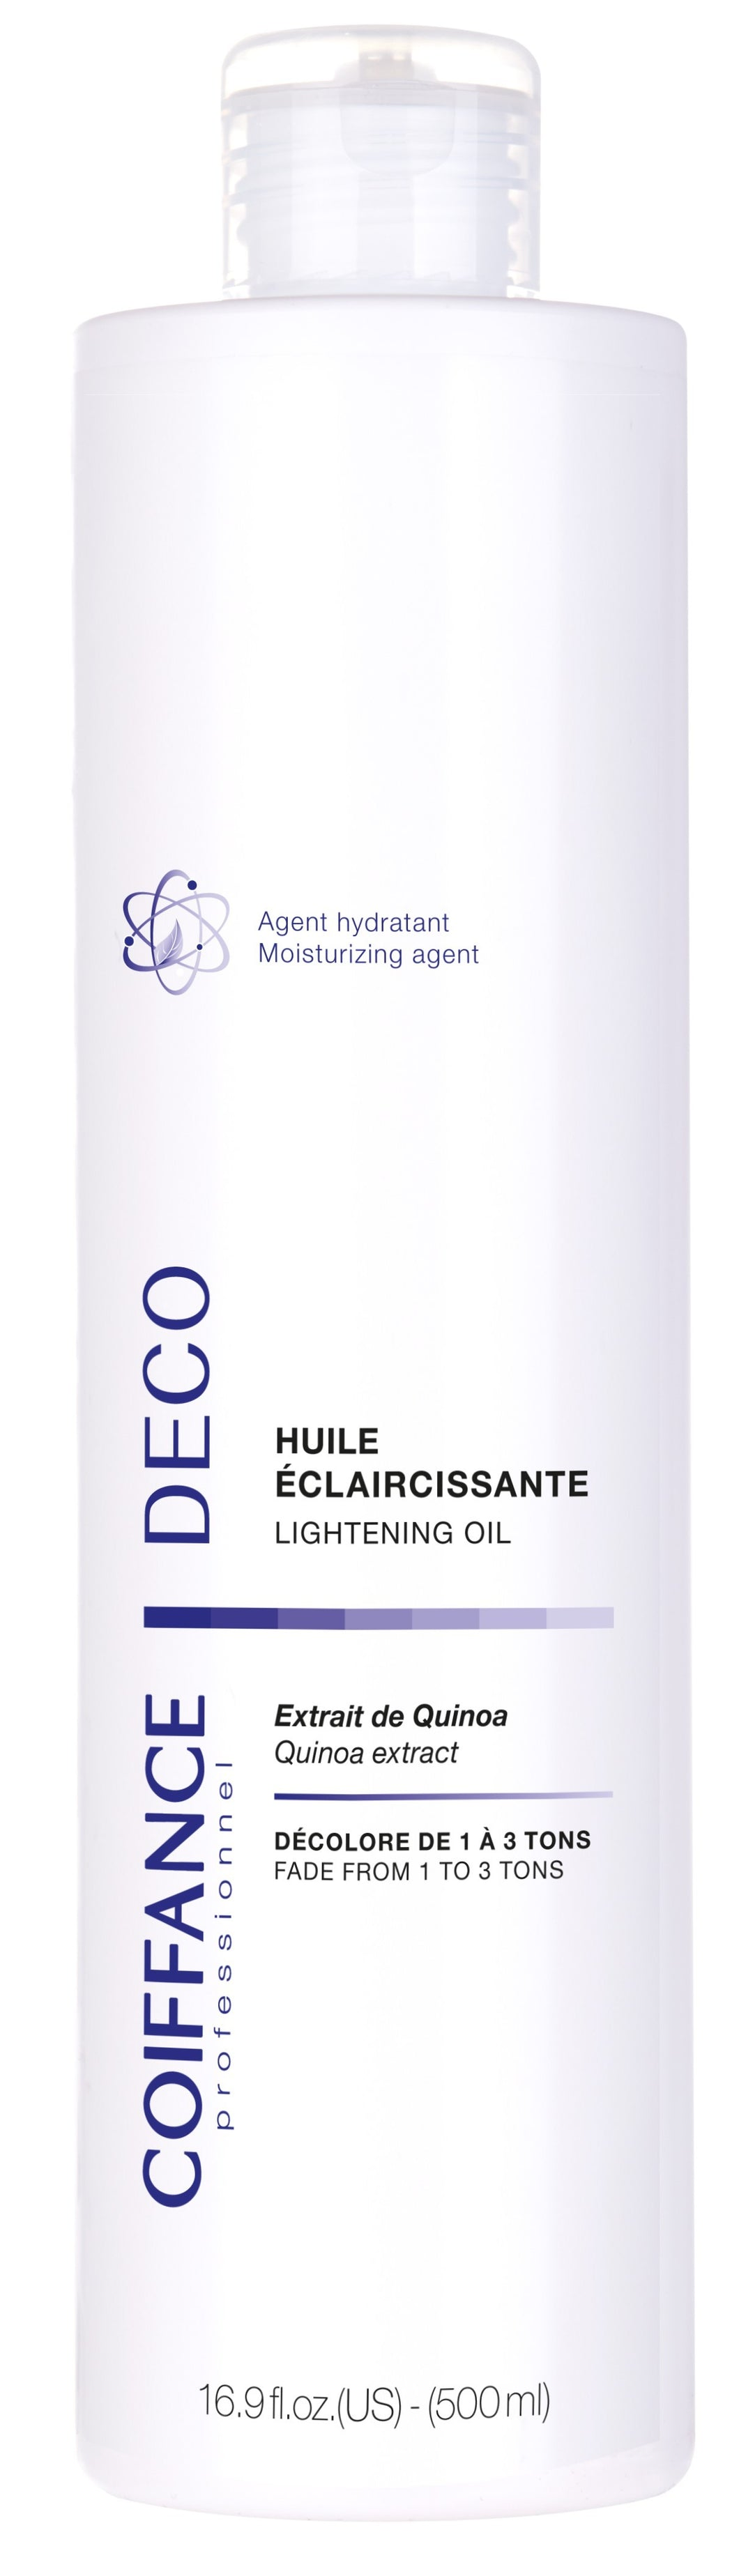 Coiffance -  deco lightening oil - 500ML